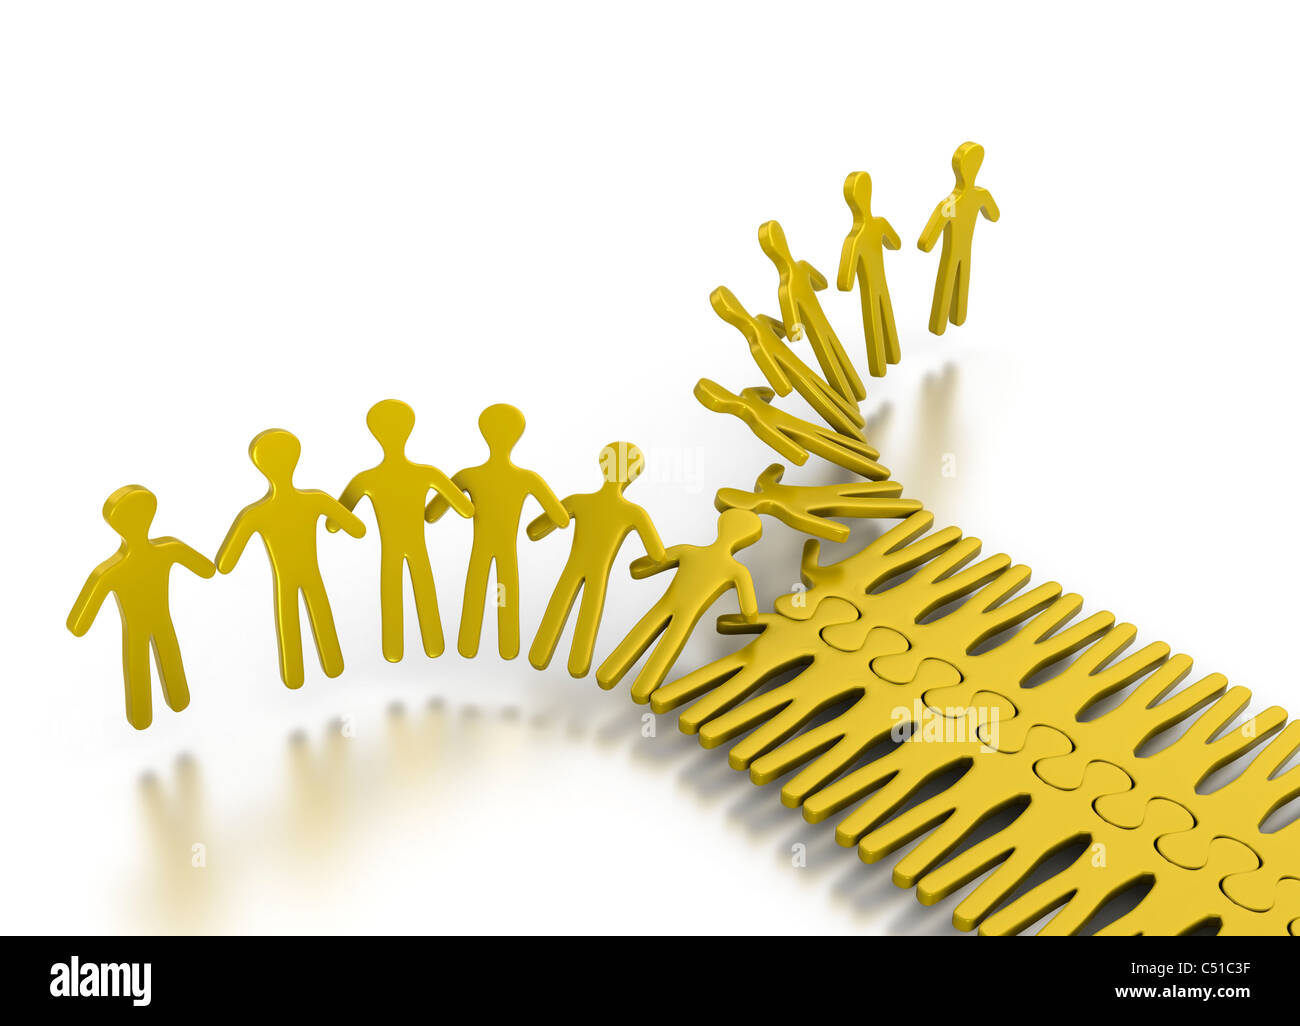 People integrating in an orderly way for strength and teamwork on a white background - Stock Image